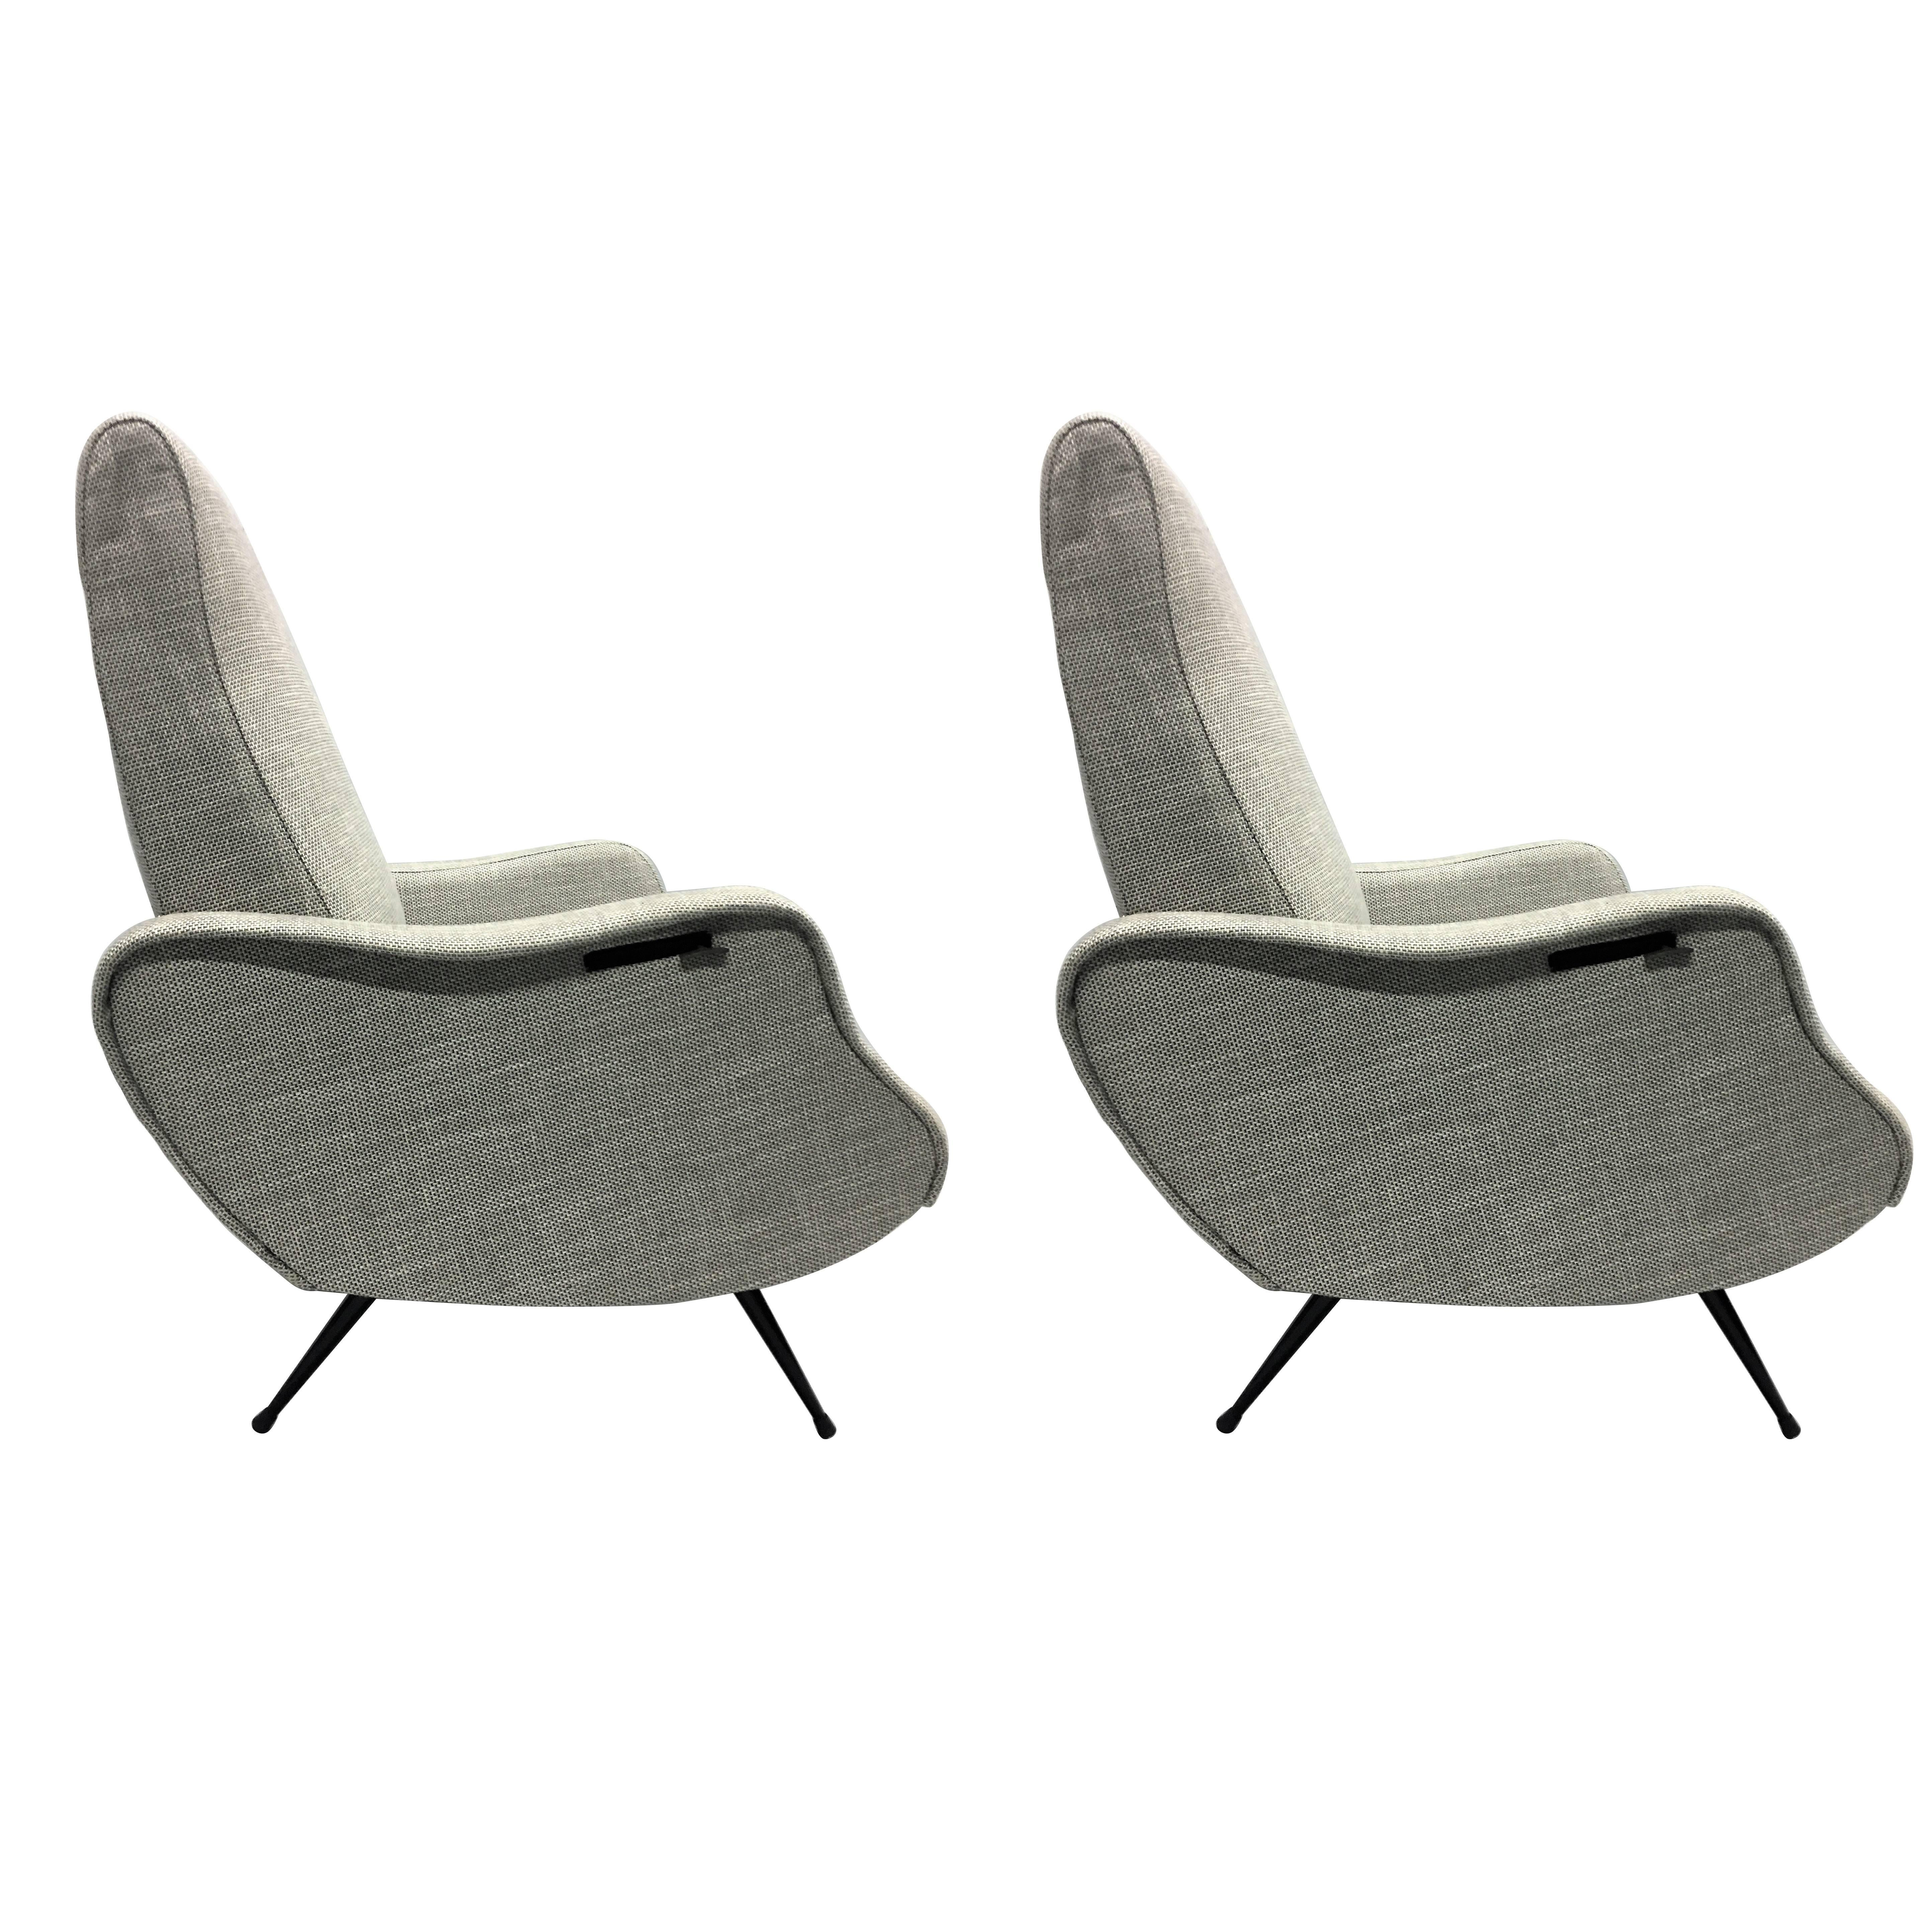 Ordinaire Pair Mid Century Modern Lounge Chairs / Recliners Style Marco Zanuso,  Italy,1950